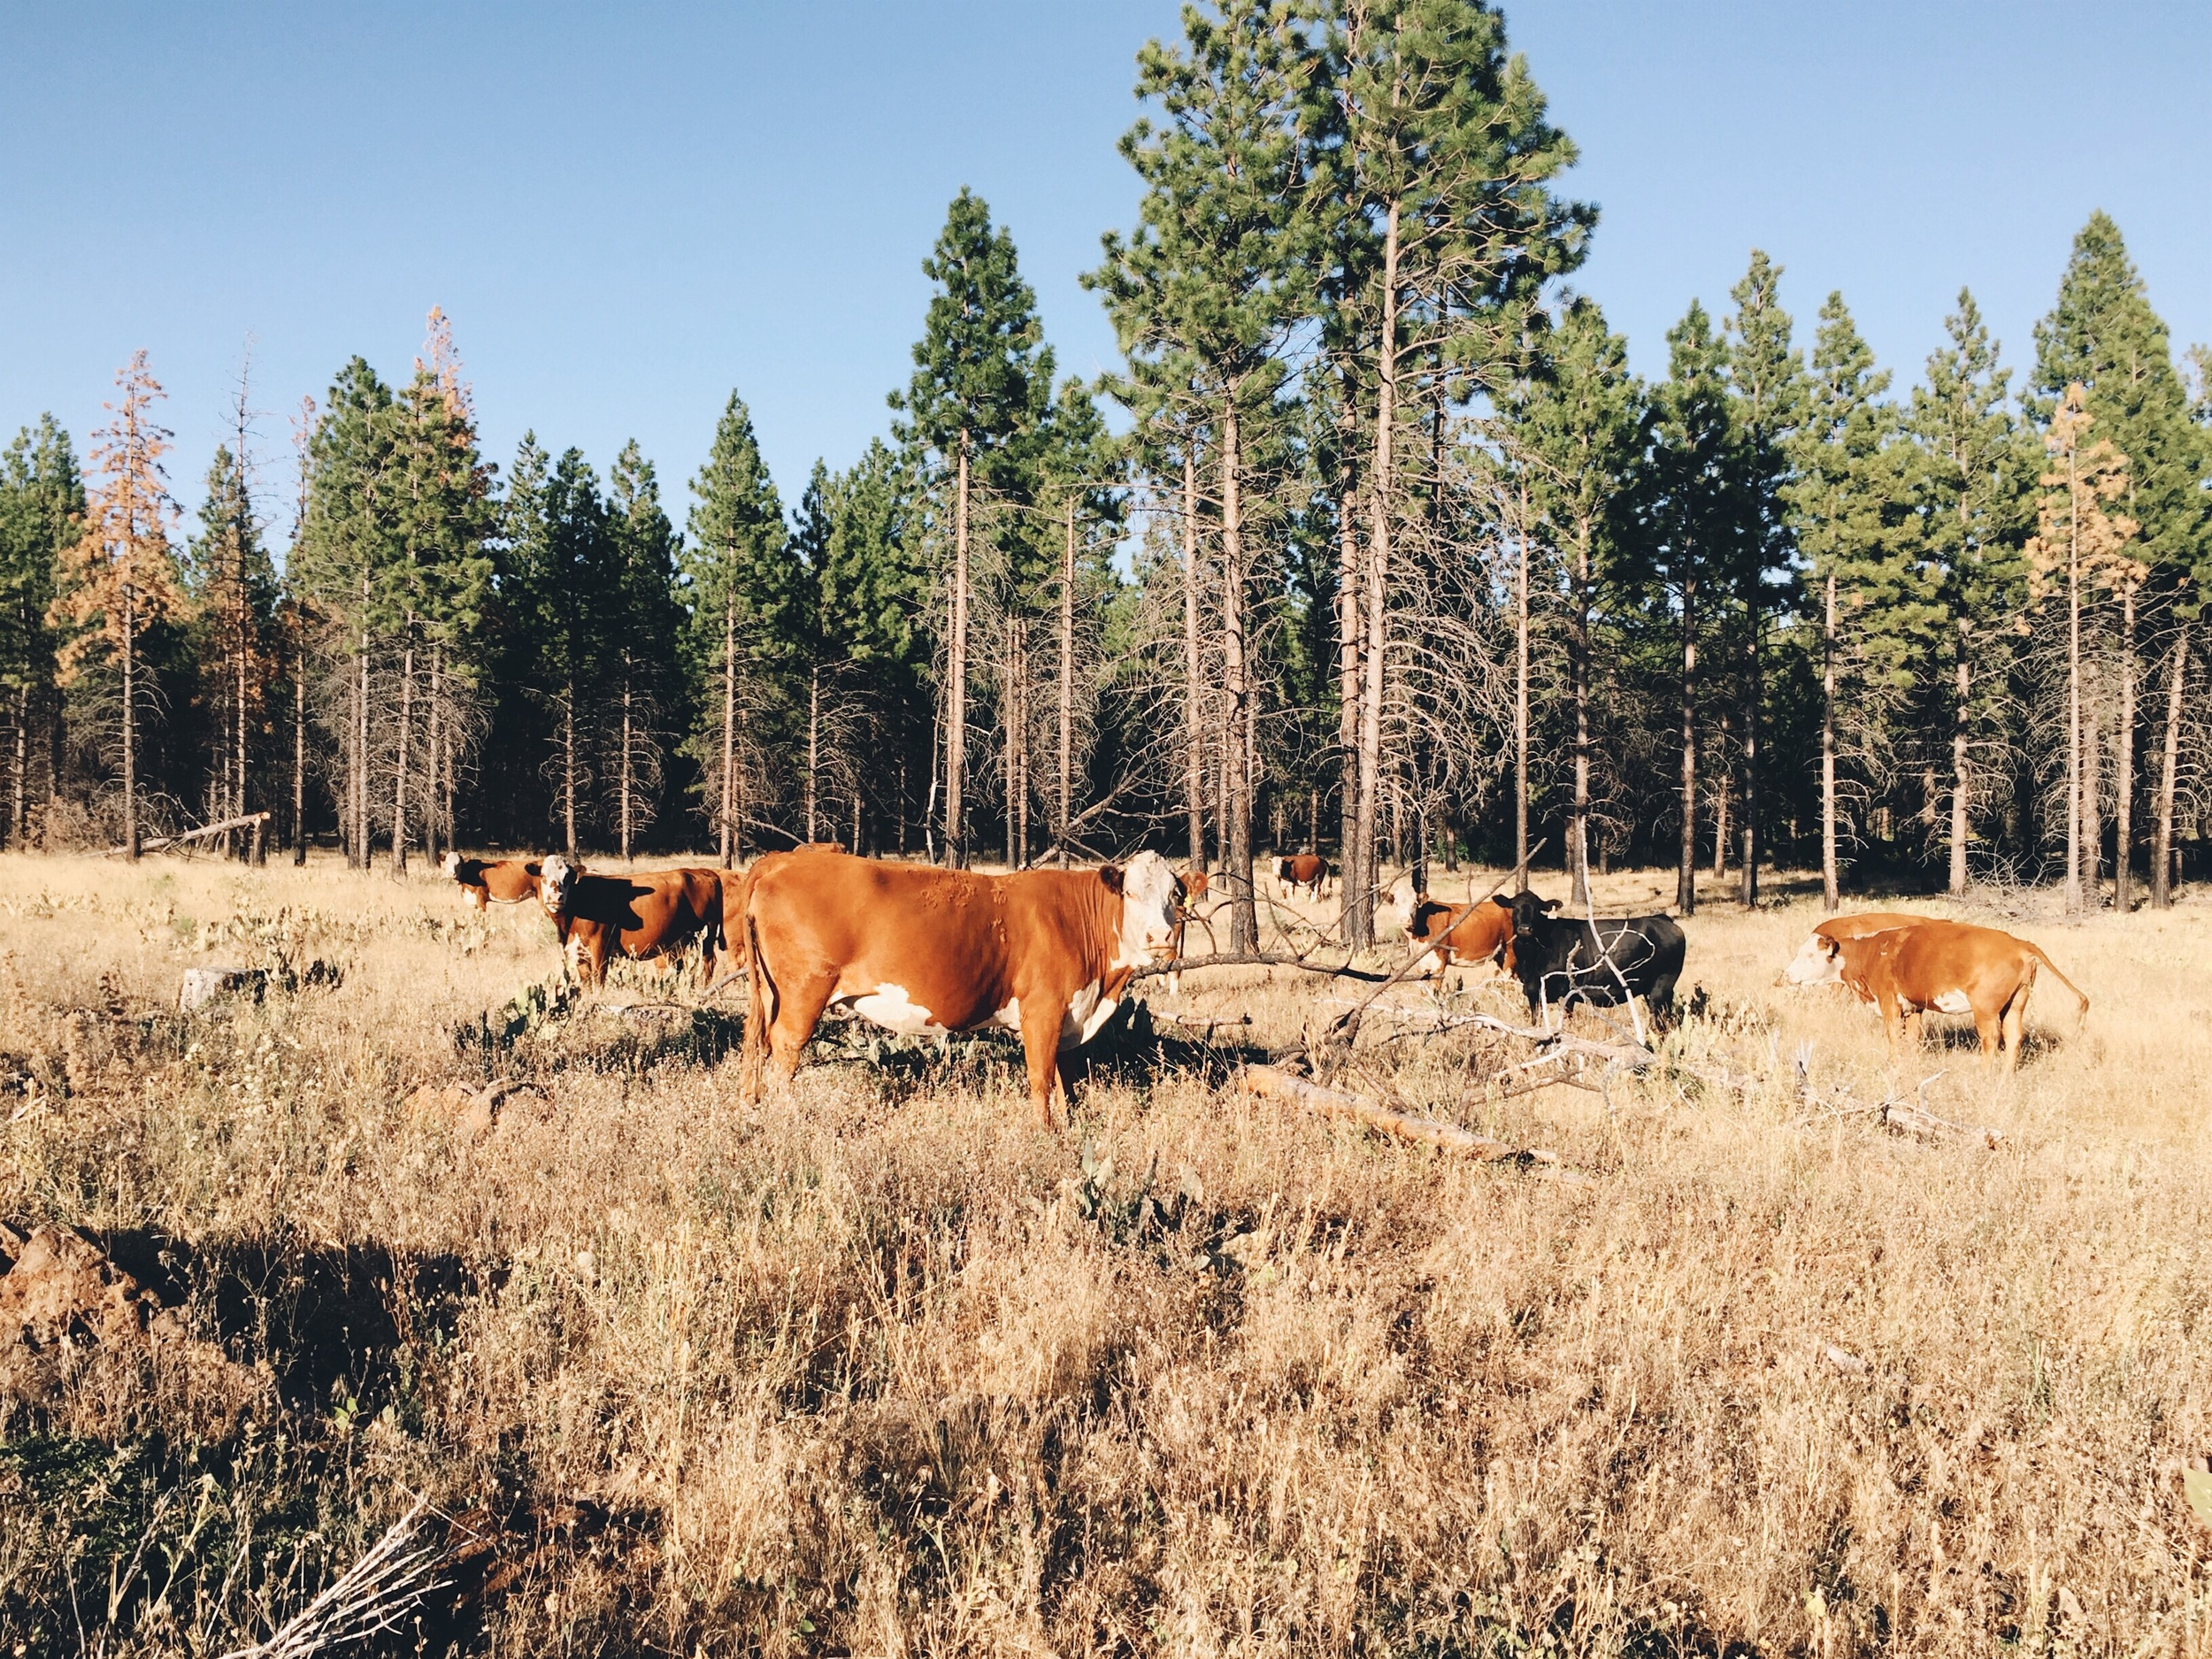 Free ranging cattle.